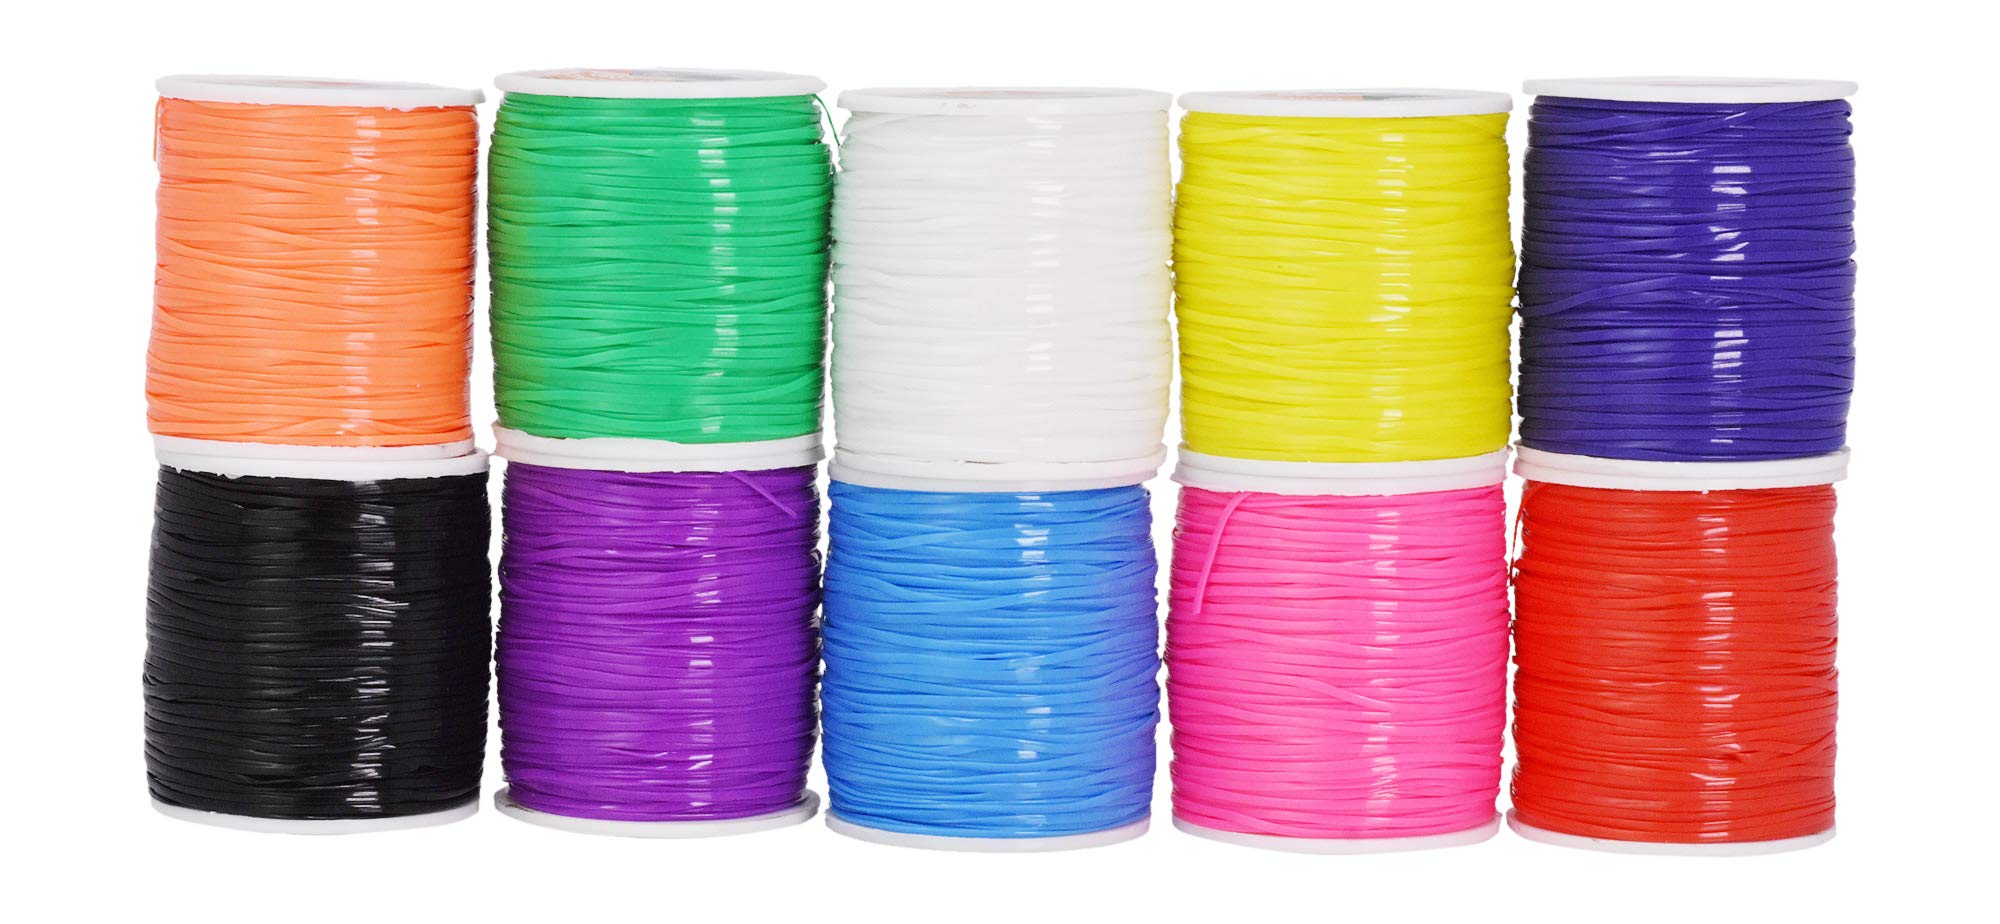 Mandala Crafts Plastic Lacing Cord Kit for Key Chains, Bracelets, Necklaces, Lanyards, Jewelry Making (Rainbow, 1.5mm) by Mandala Crafts